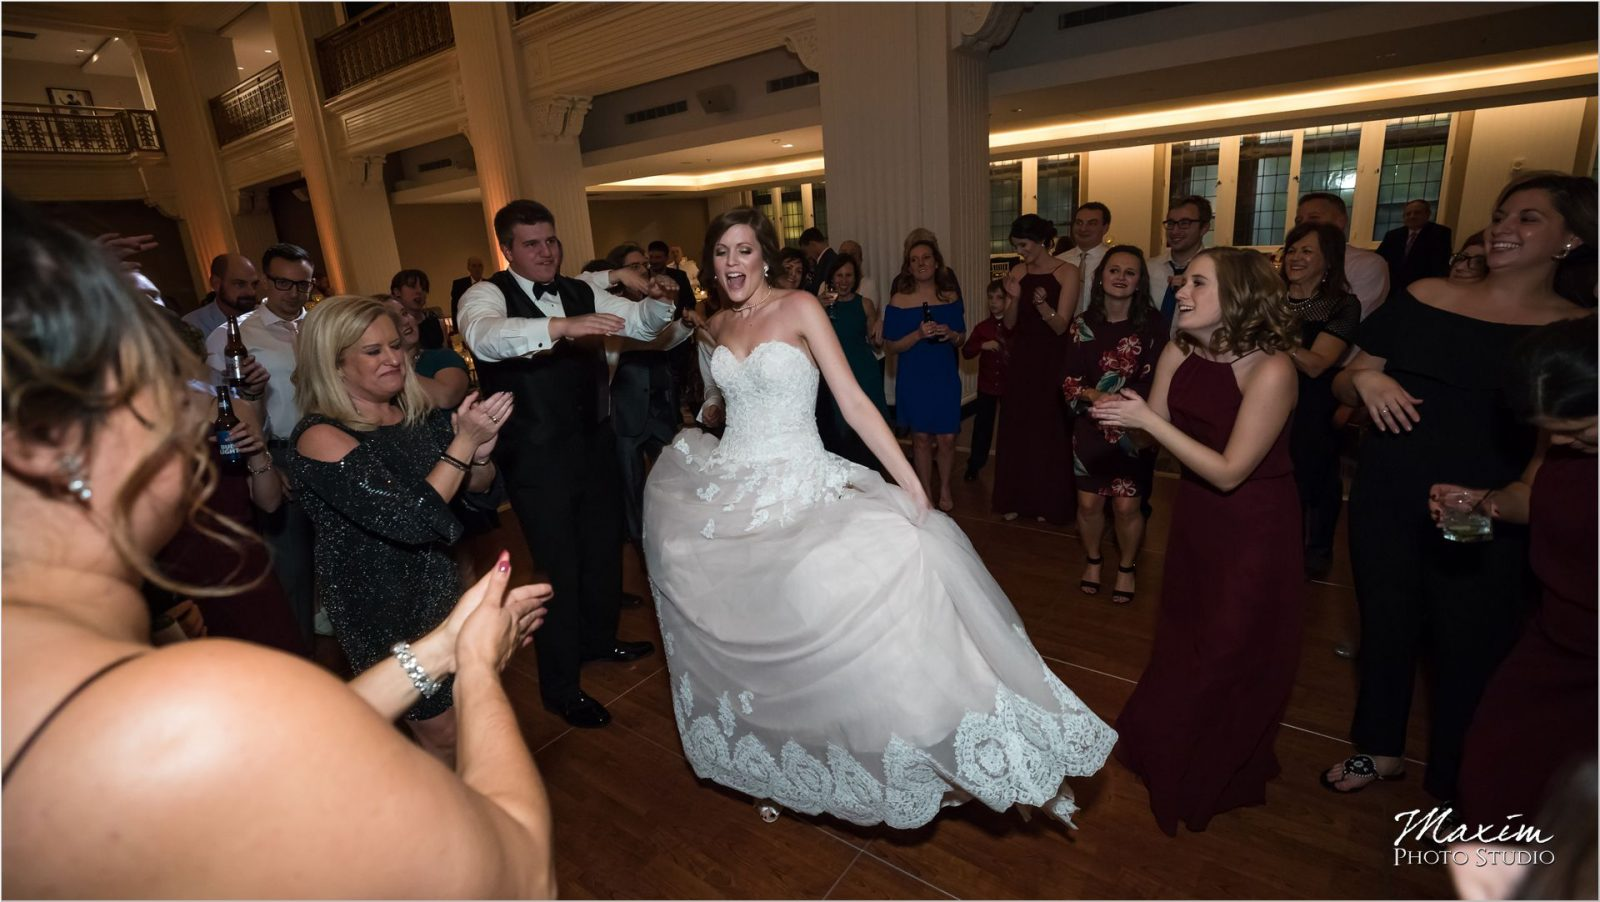 Renaissance Hotel Cincinnati Wedding reception Come on Eileen